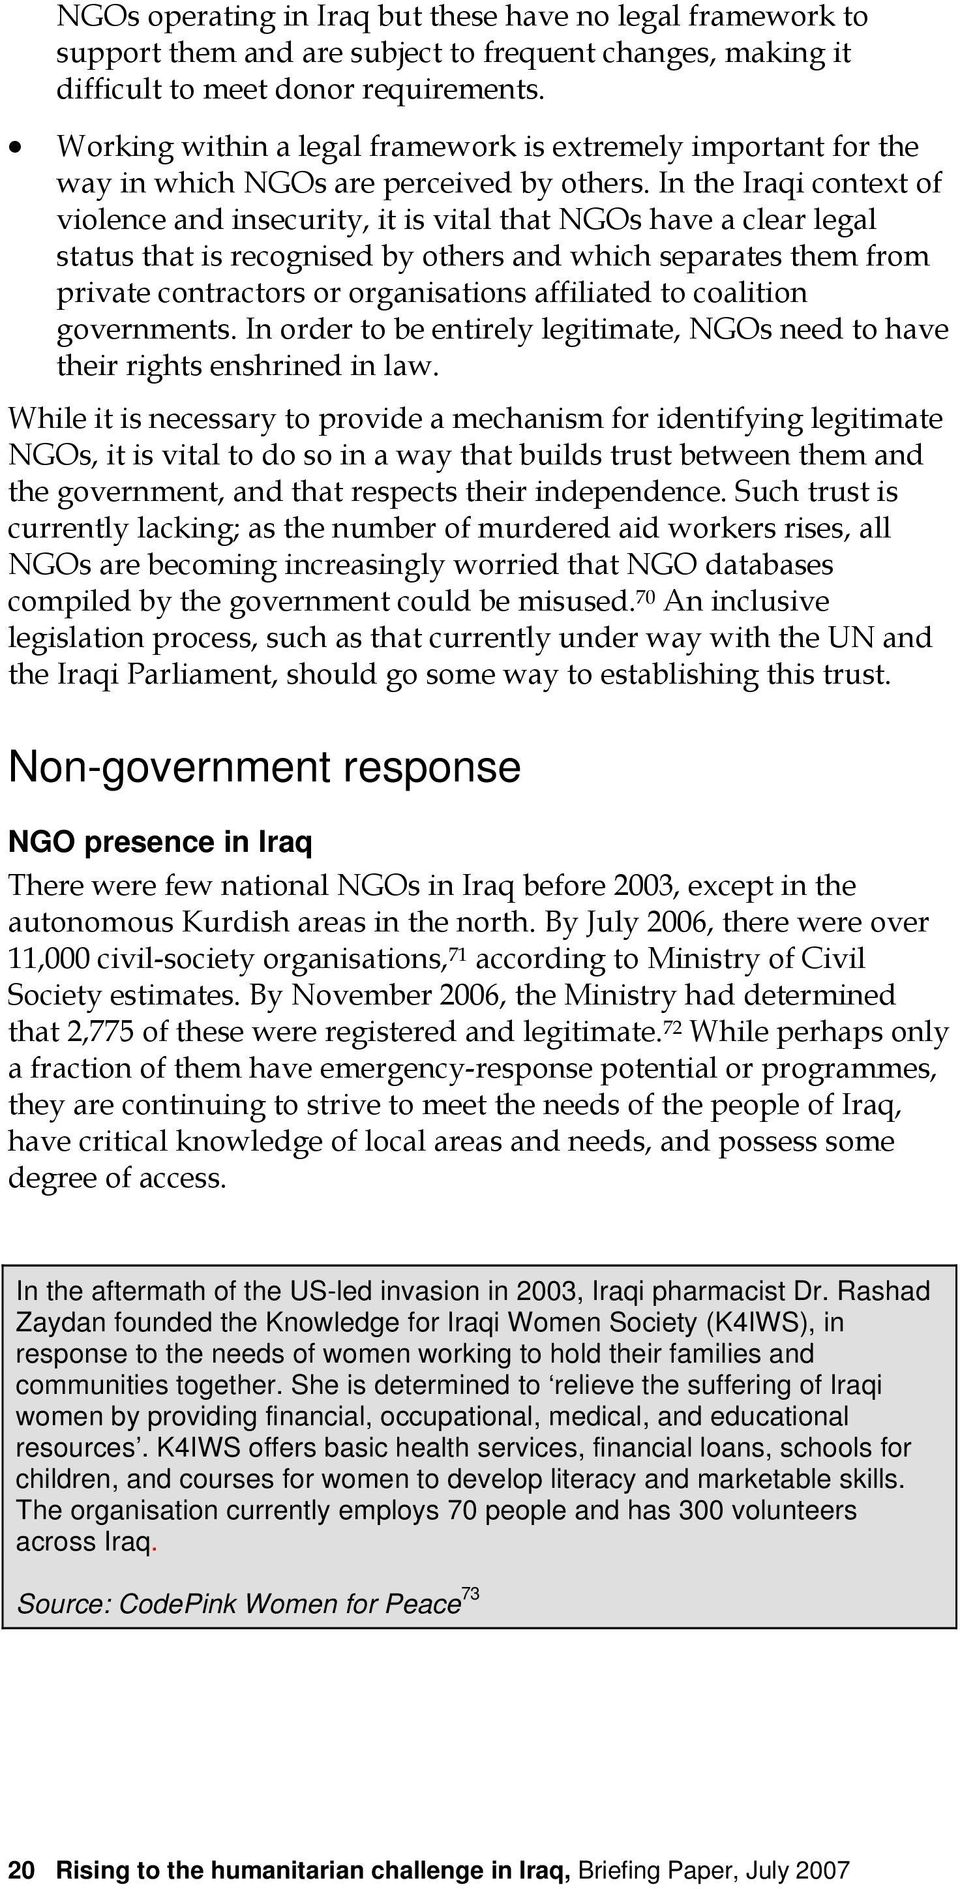 In the Iraqi context of violence and insecurity, it is vital that NGOs have a clear legal status that is recognised by others and which separates them from private contractors or organisations